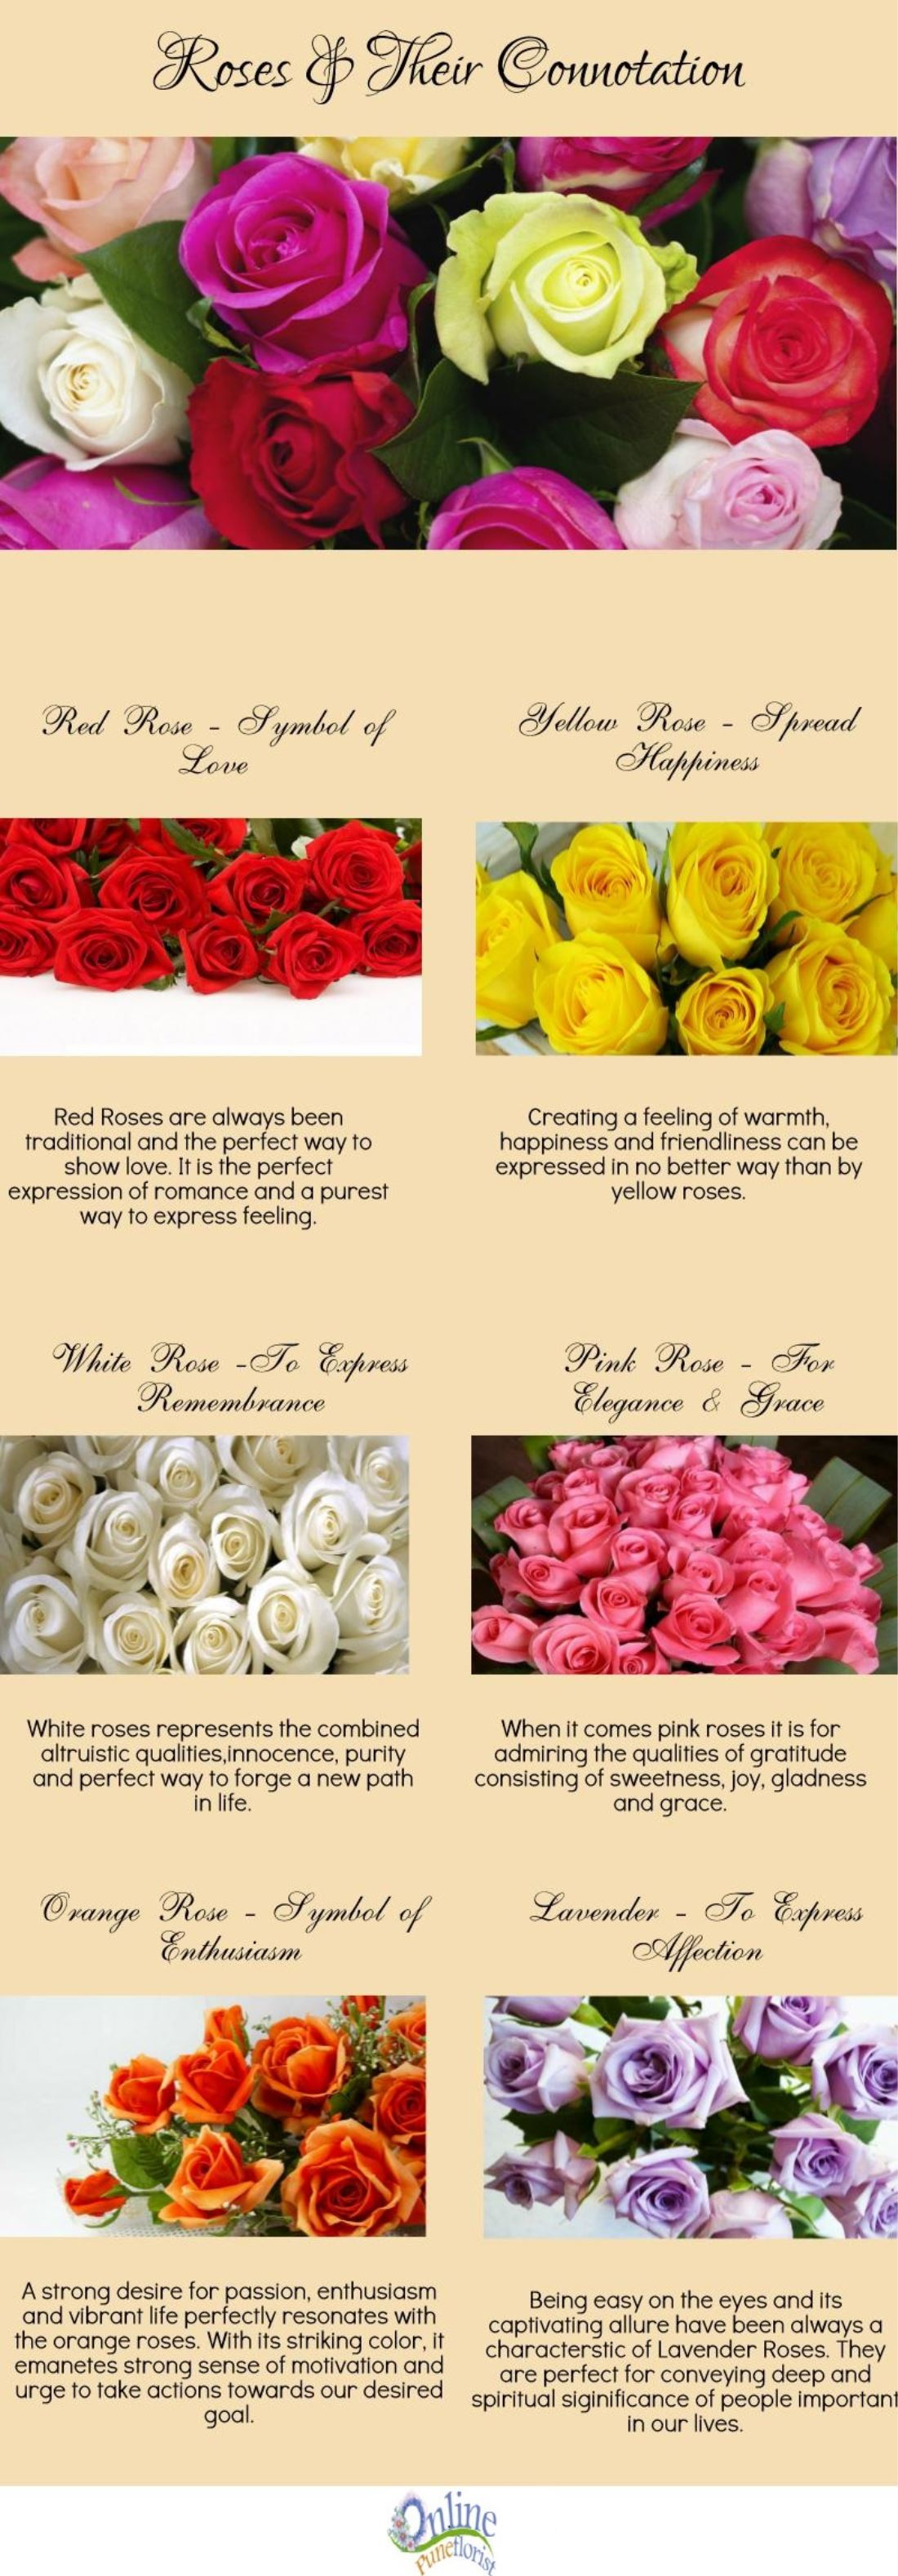 Roses: The Secret of Happiness! [Infographic]